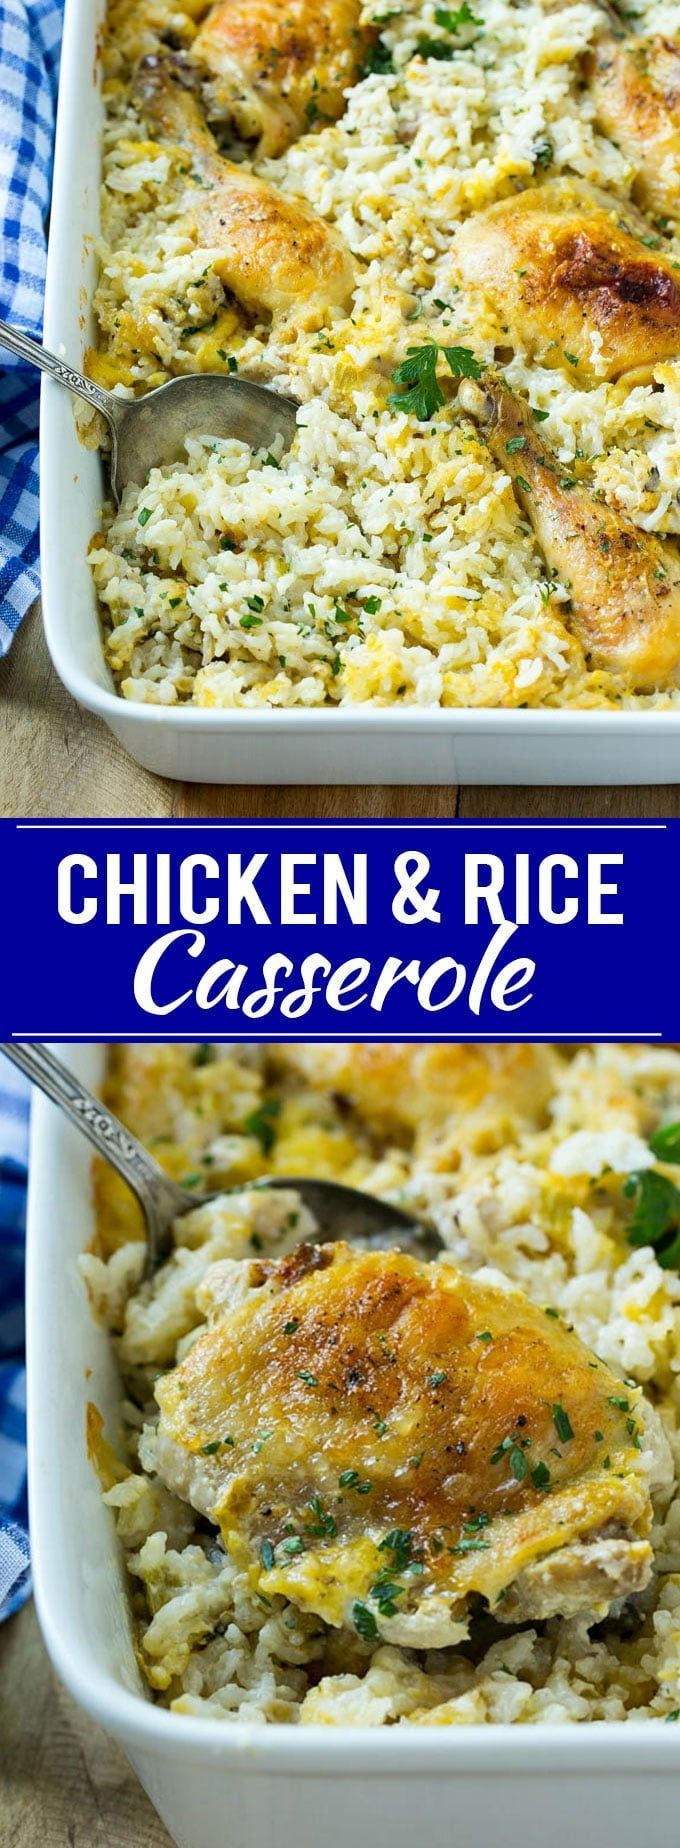 Chicken And Rice Oven Recipe